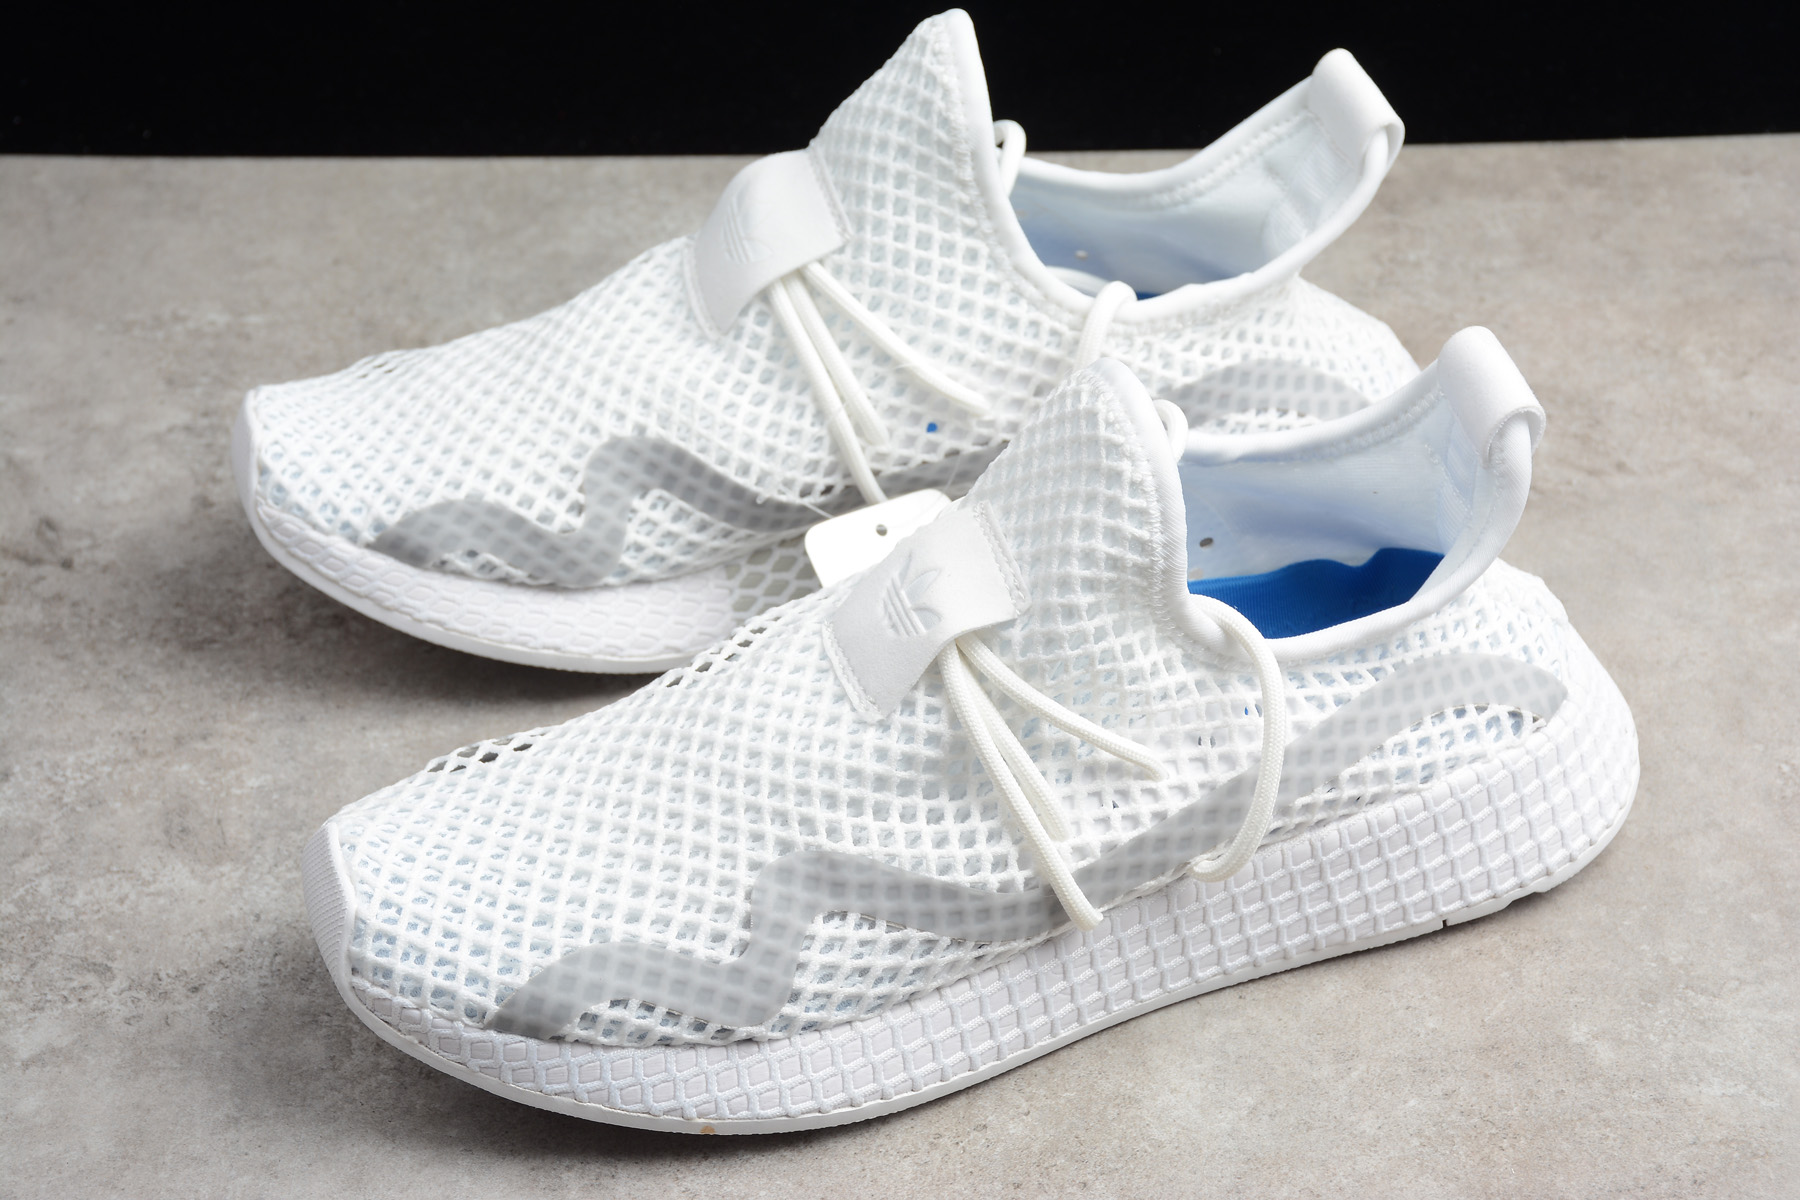 Arashigaoka Larva del moscardón plátano  New adidas Deerupt Runner White/Grey-Blue Shoes 2018 Free Shipping